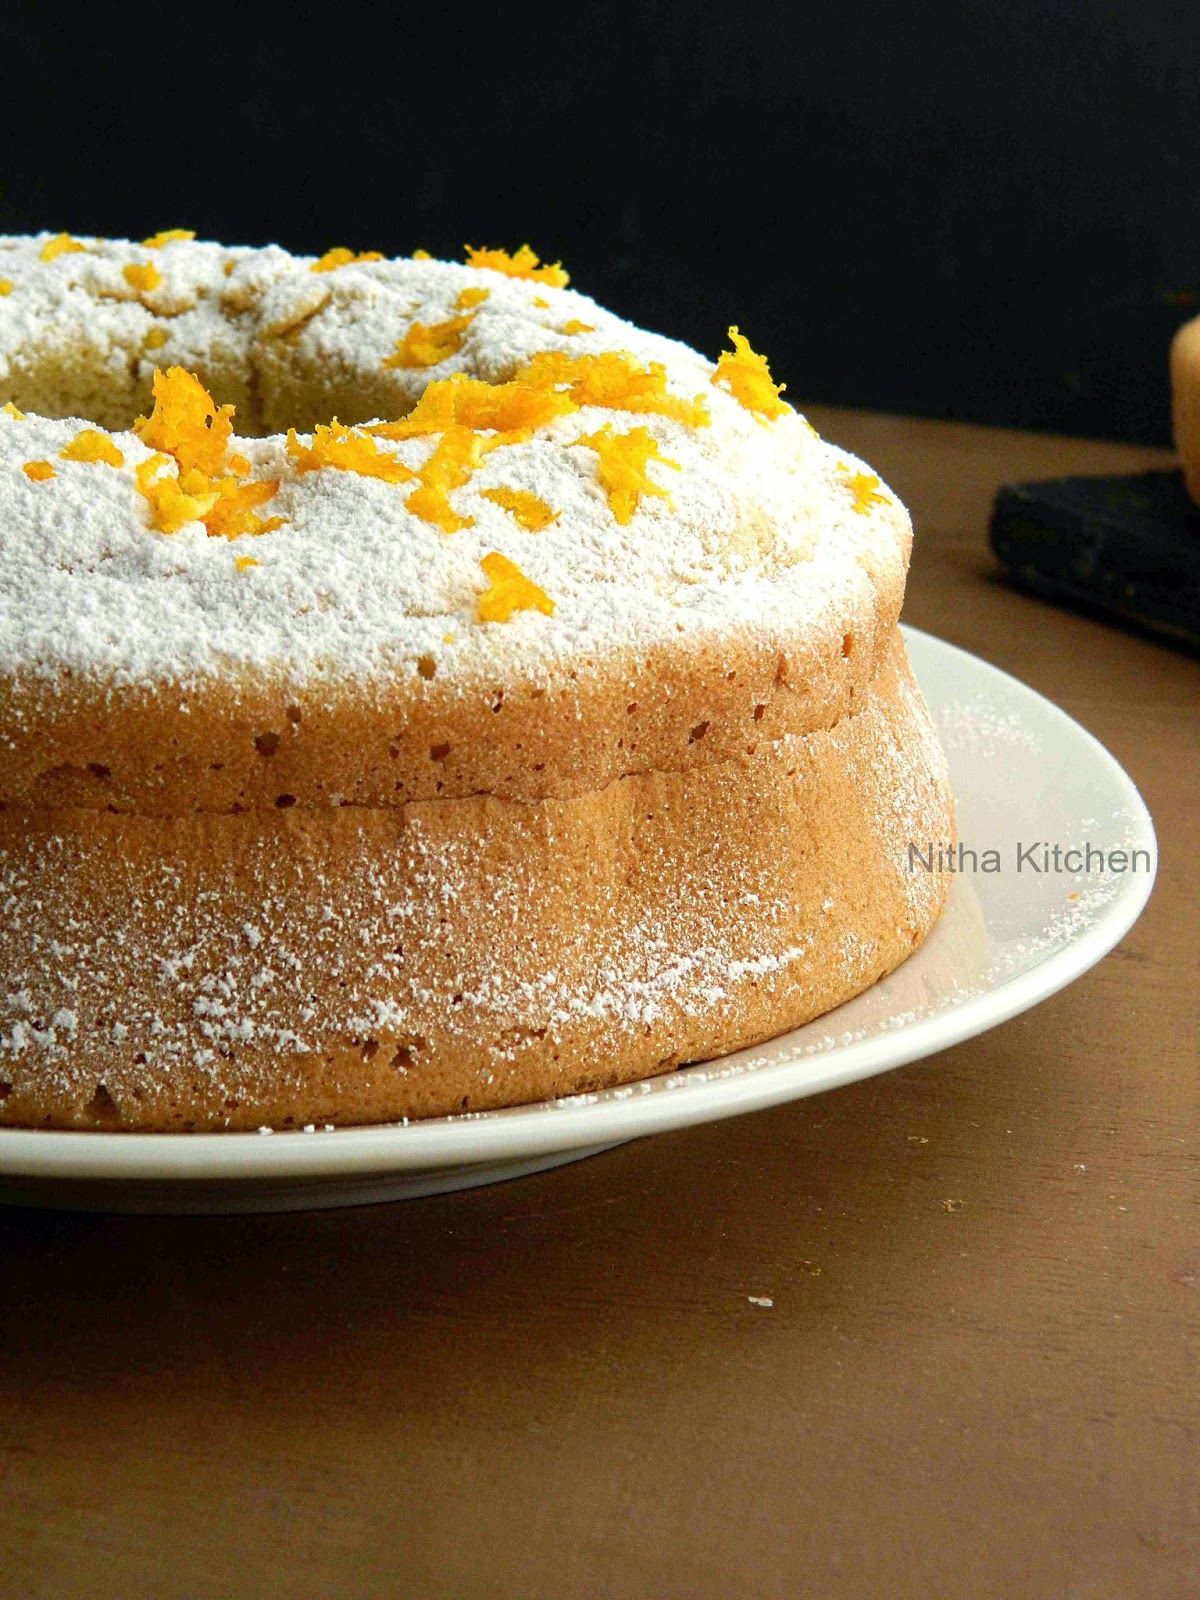 Orange Glow Chiffon Cake | Orange Sponge Cake Recipe